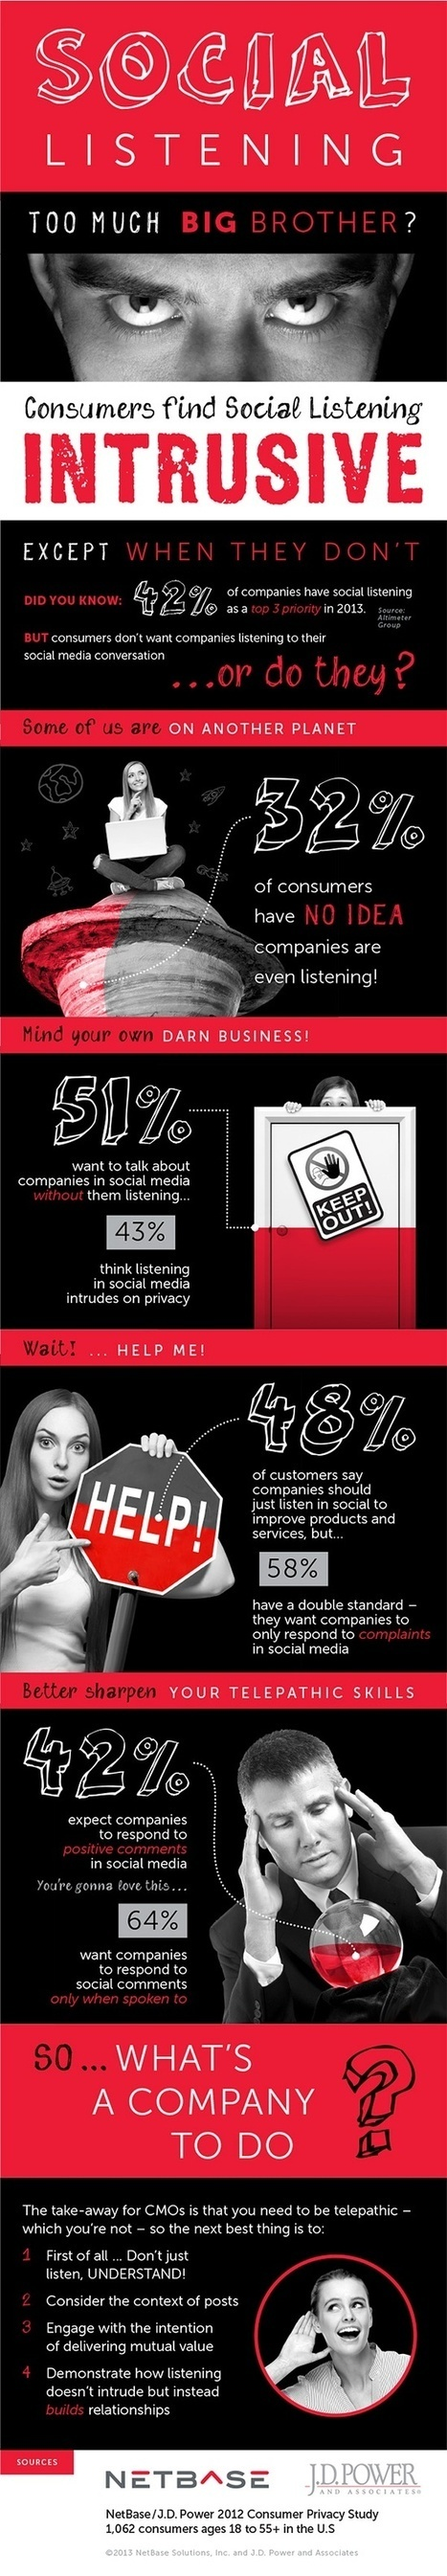 51% Of Customers Want To Talk About Brands On Social Media Without Them Listening #INFOGRAPHIC | Mind Shaper Technologies | Scoop.it